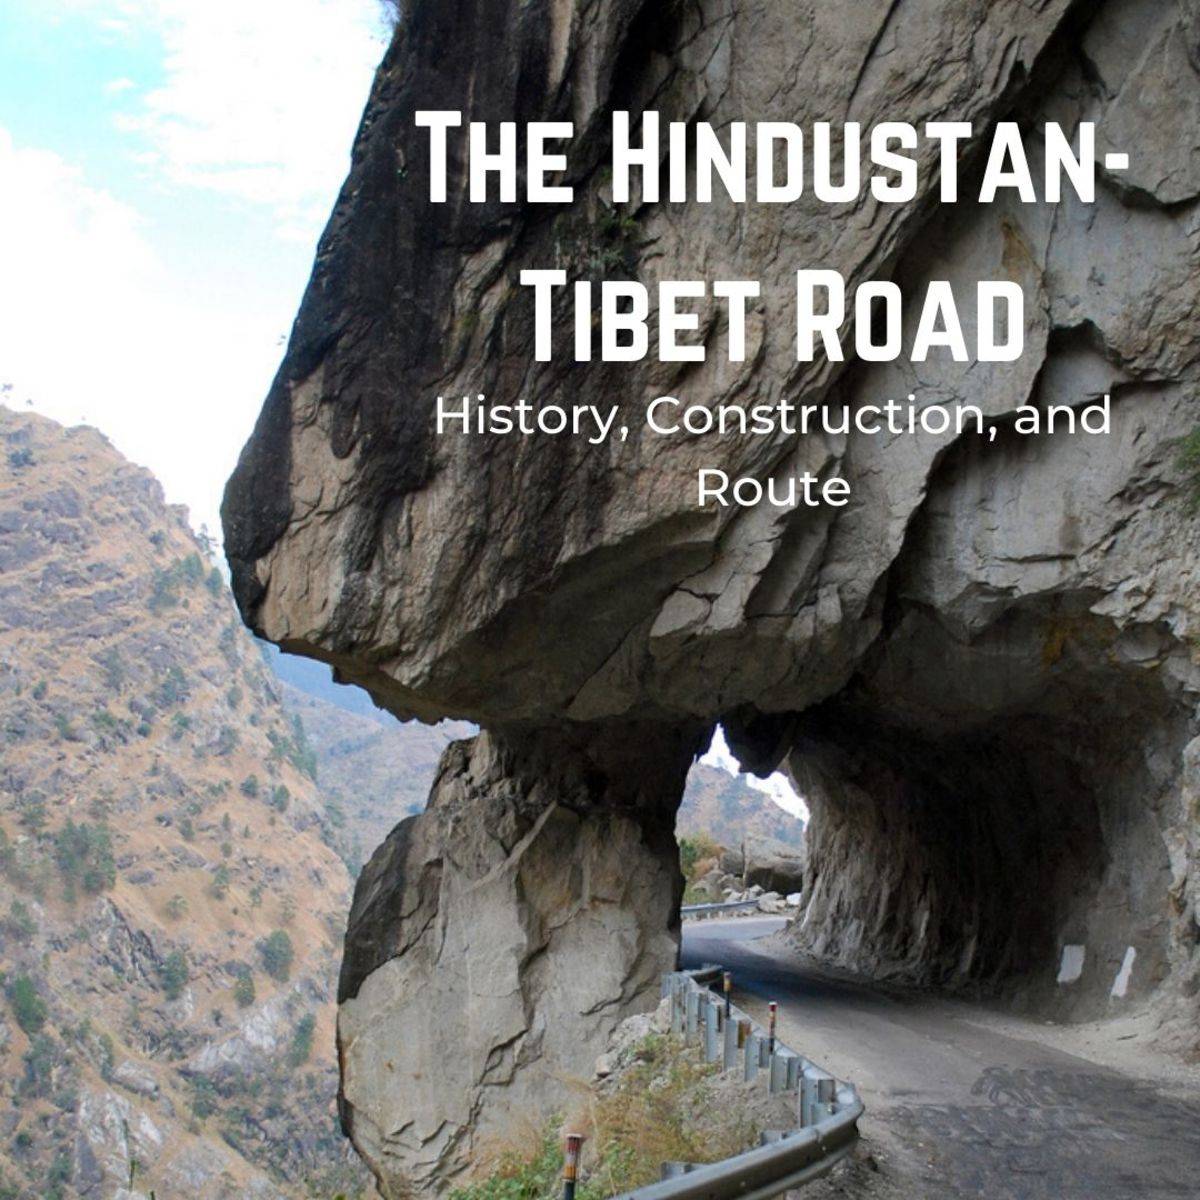 The Hindustan-Tibet road is commonly referred to as one of the most dangerous roads in the world.